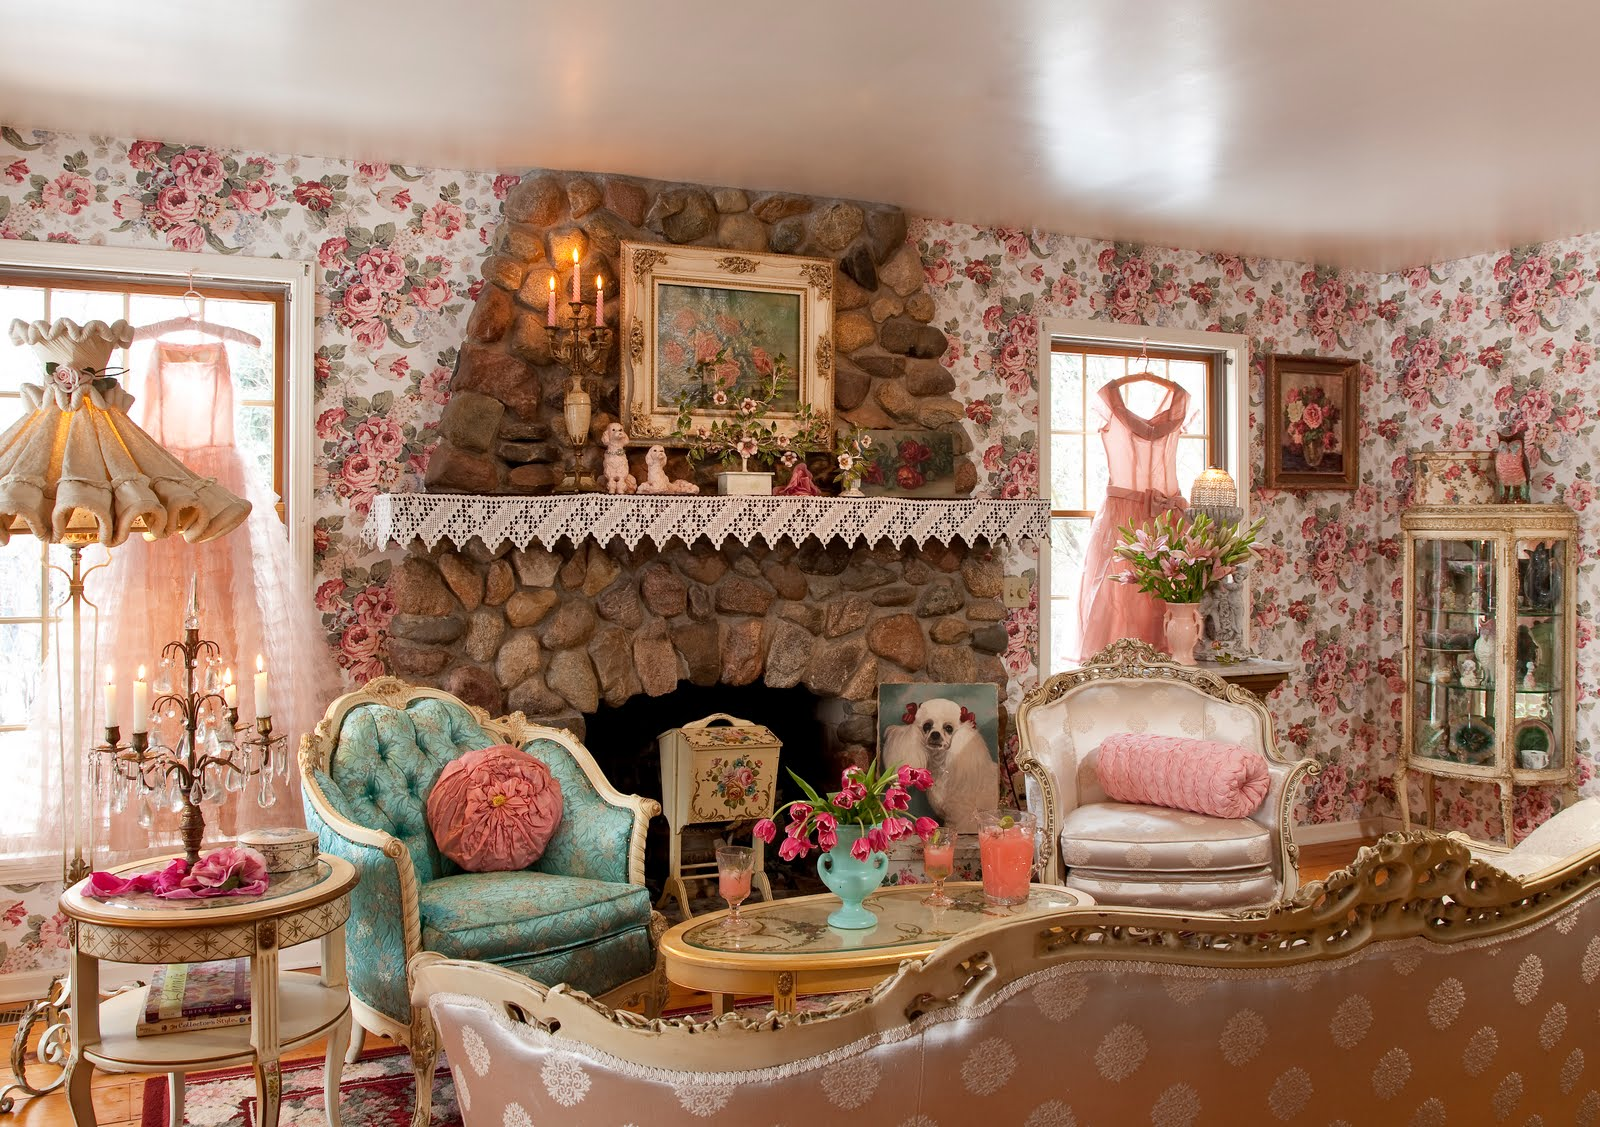 Pin up decor blast from the past with 13 pretty spaces Home interior blogs